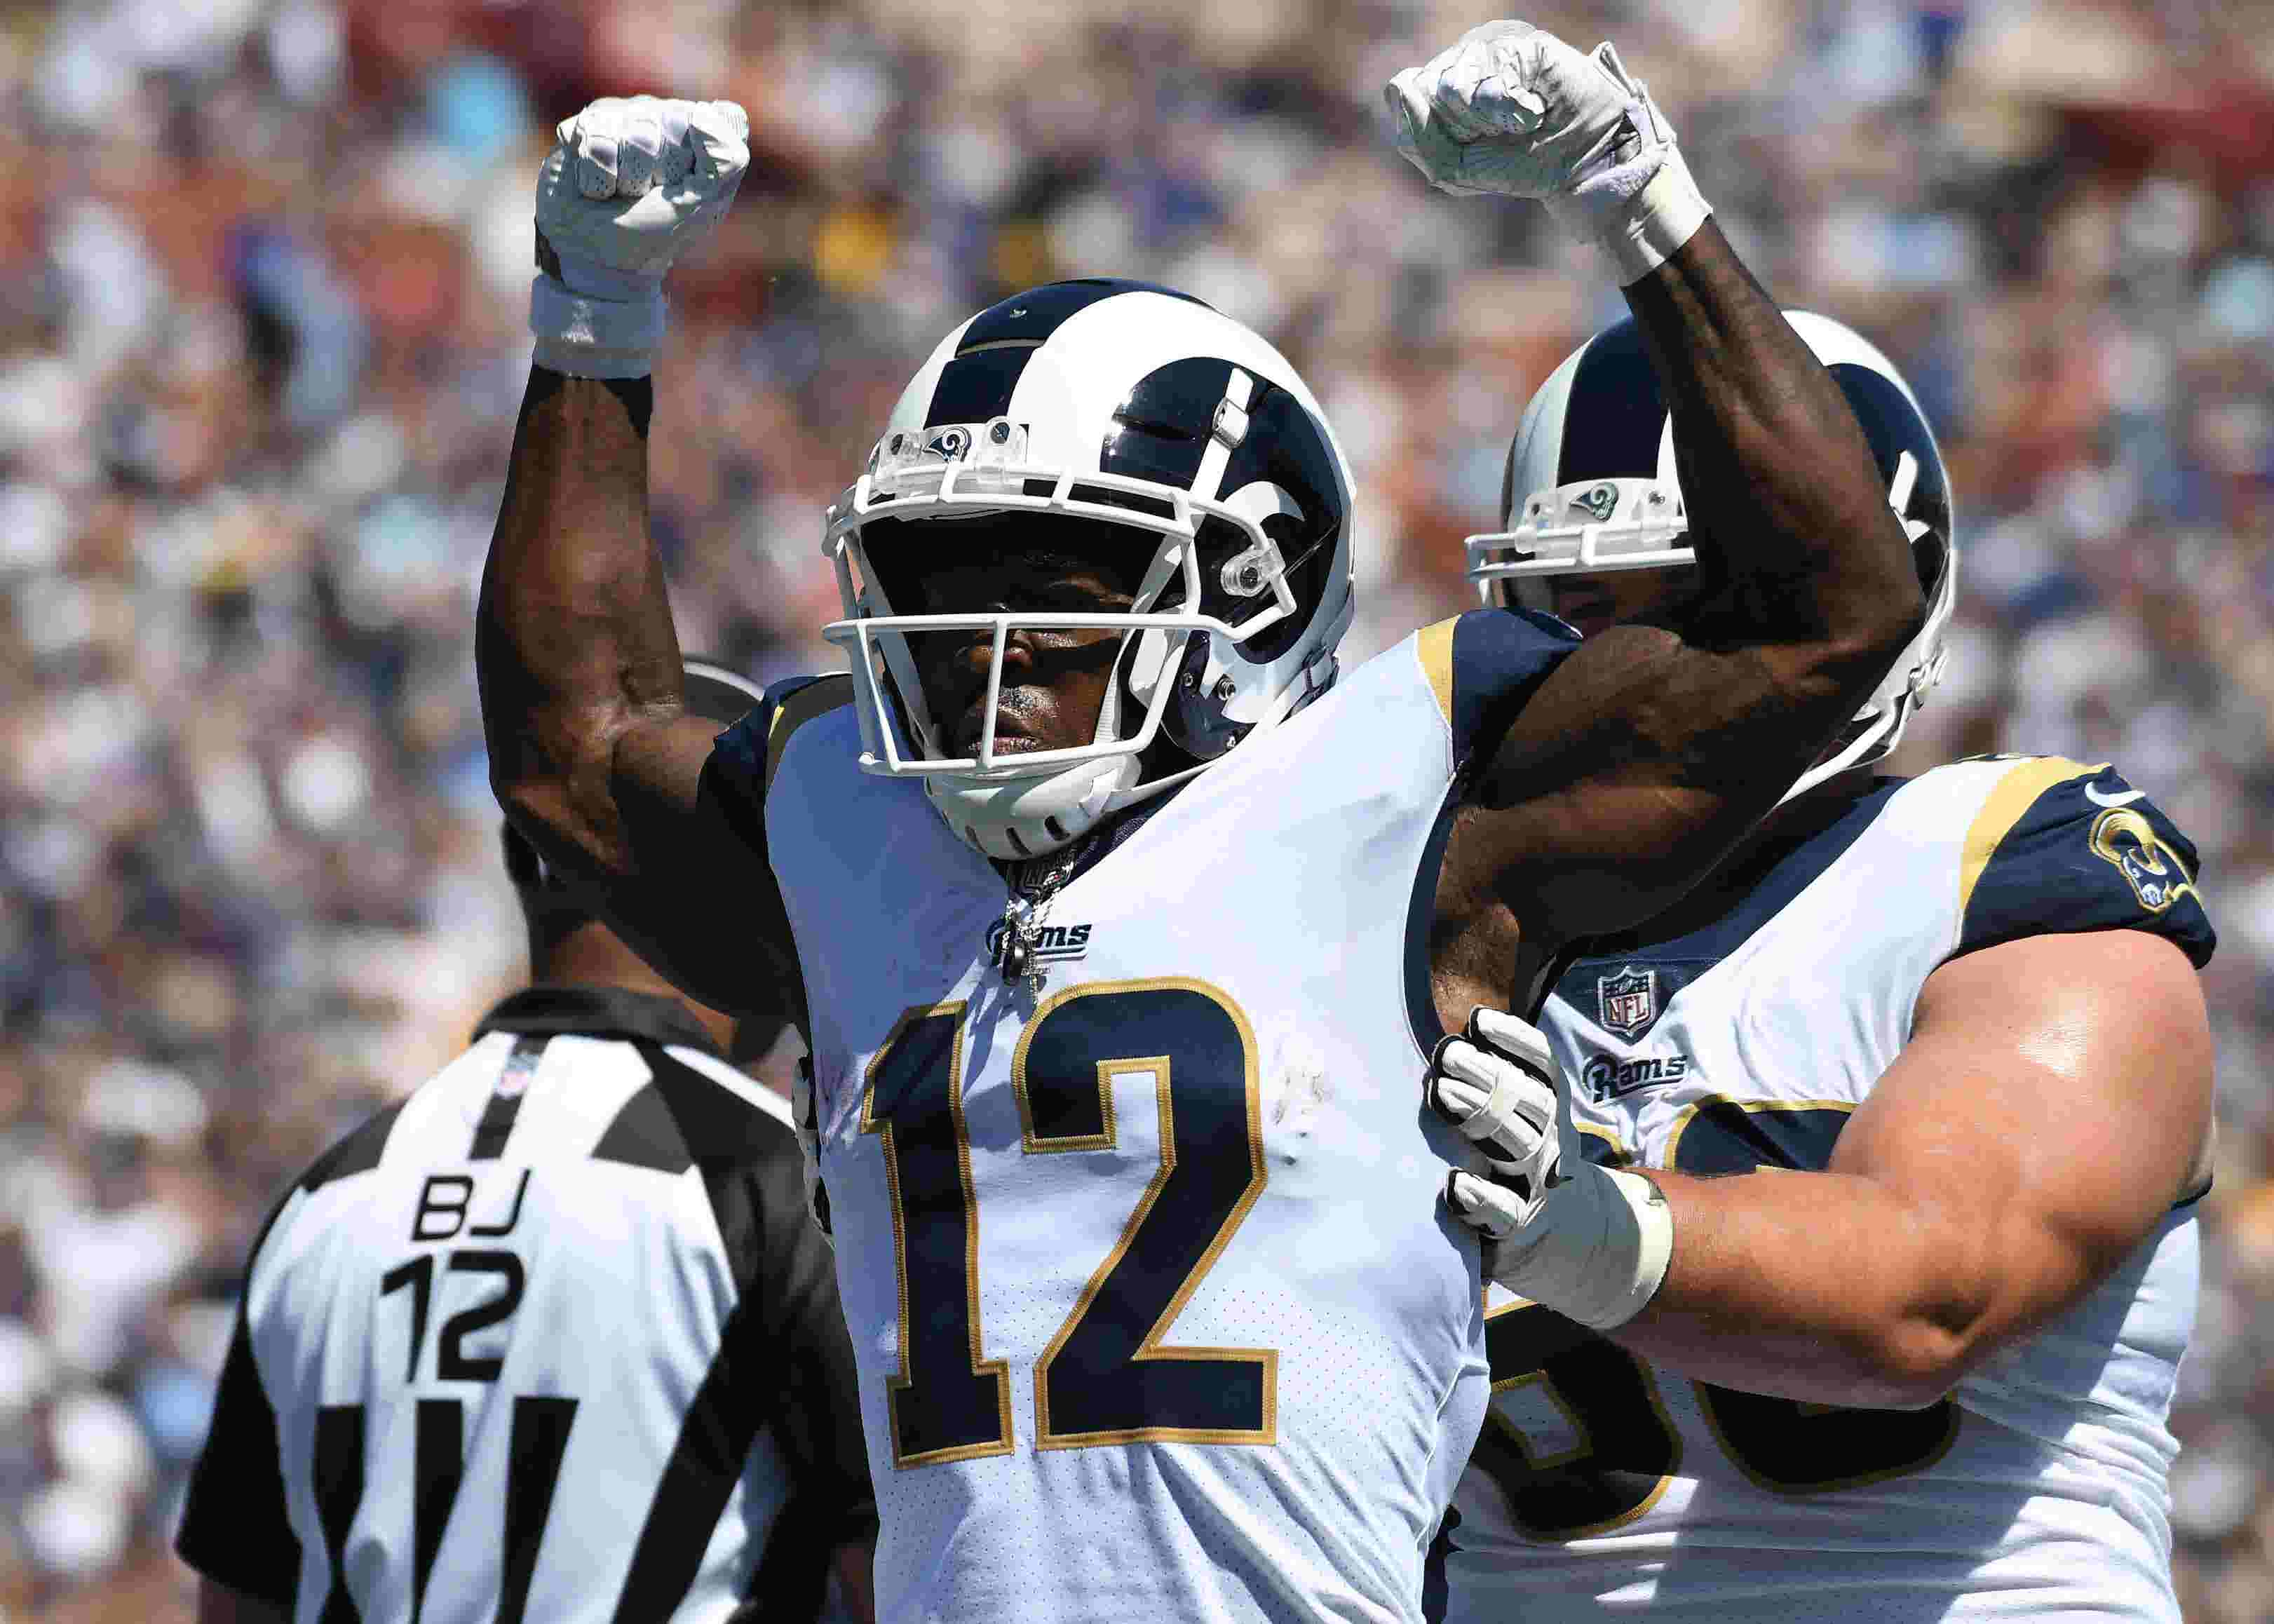 f3db805a9c2 Los Angeles Rams' secondary depth will be tested vs. Minnesota Vikings  after injuries